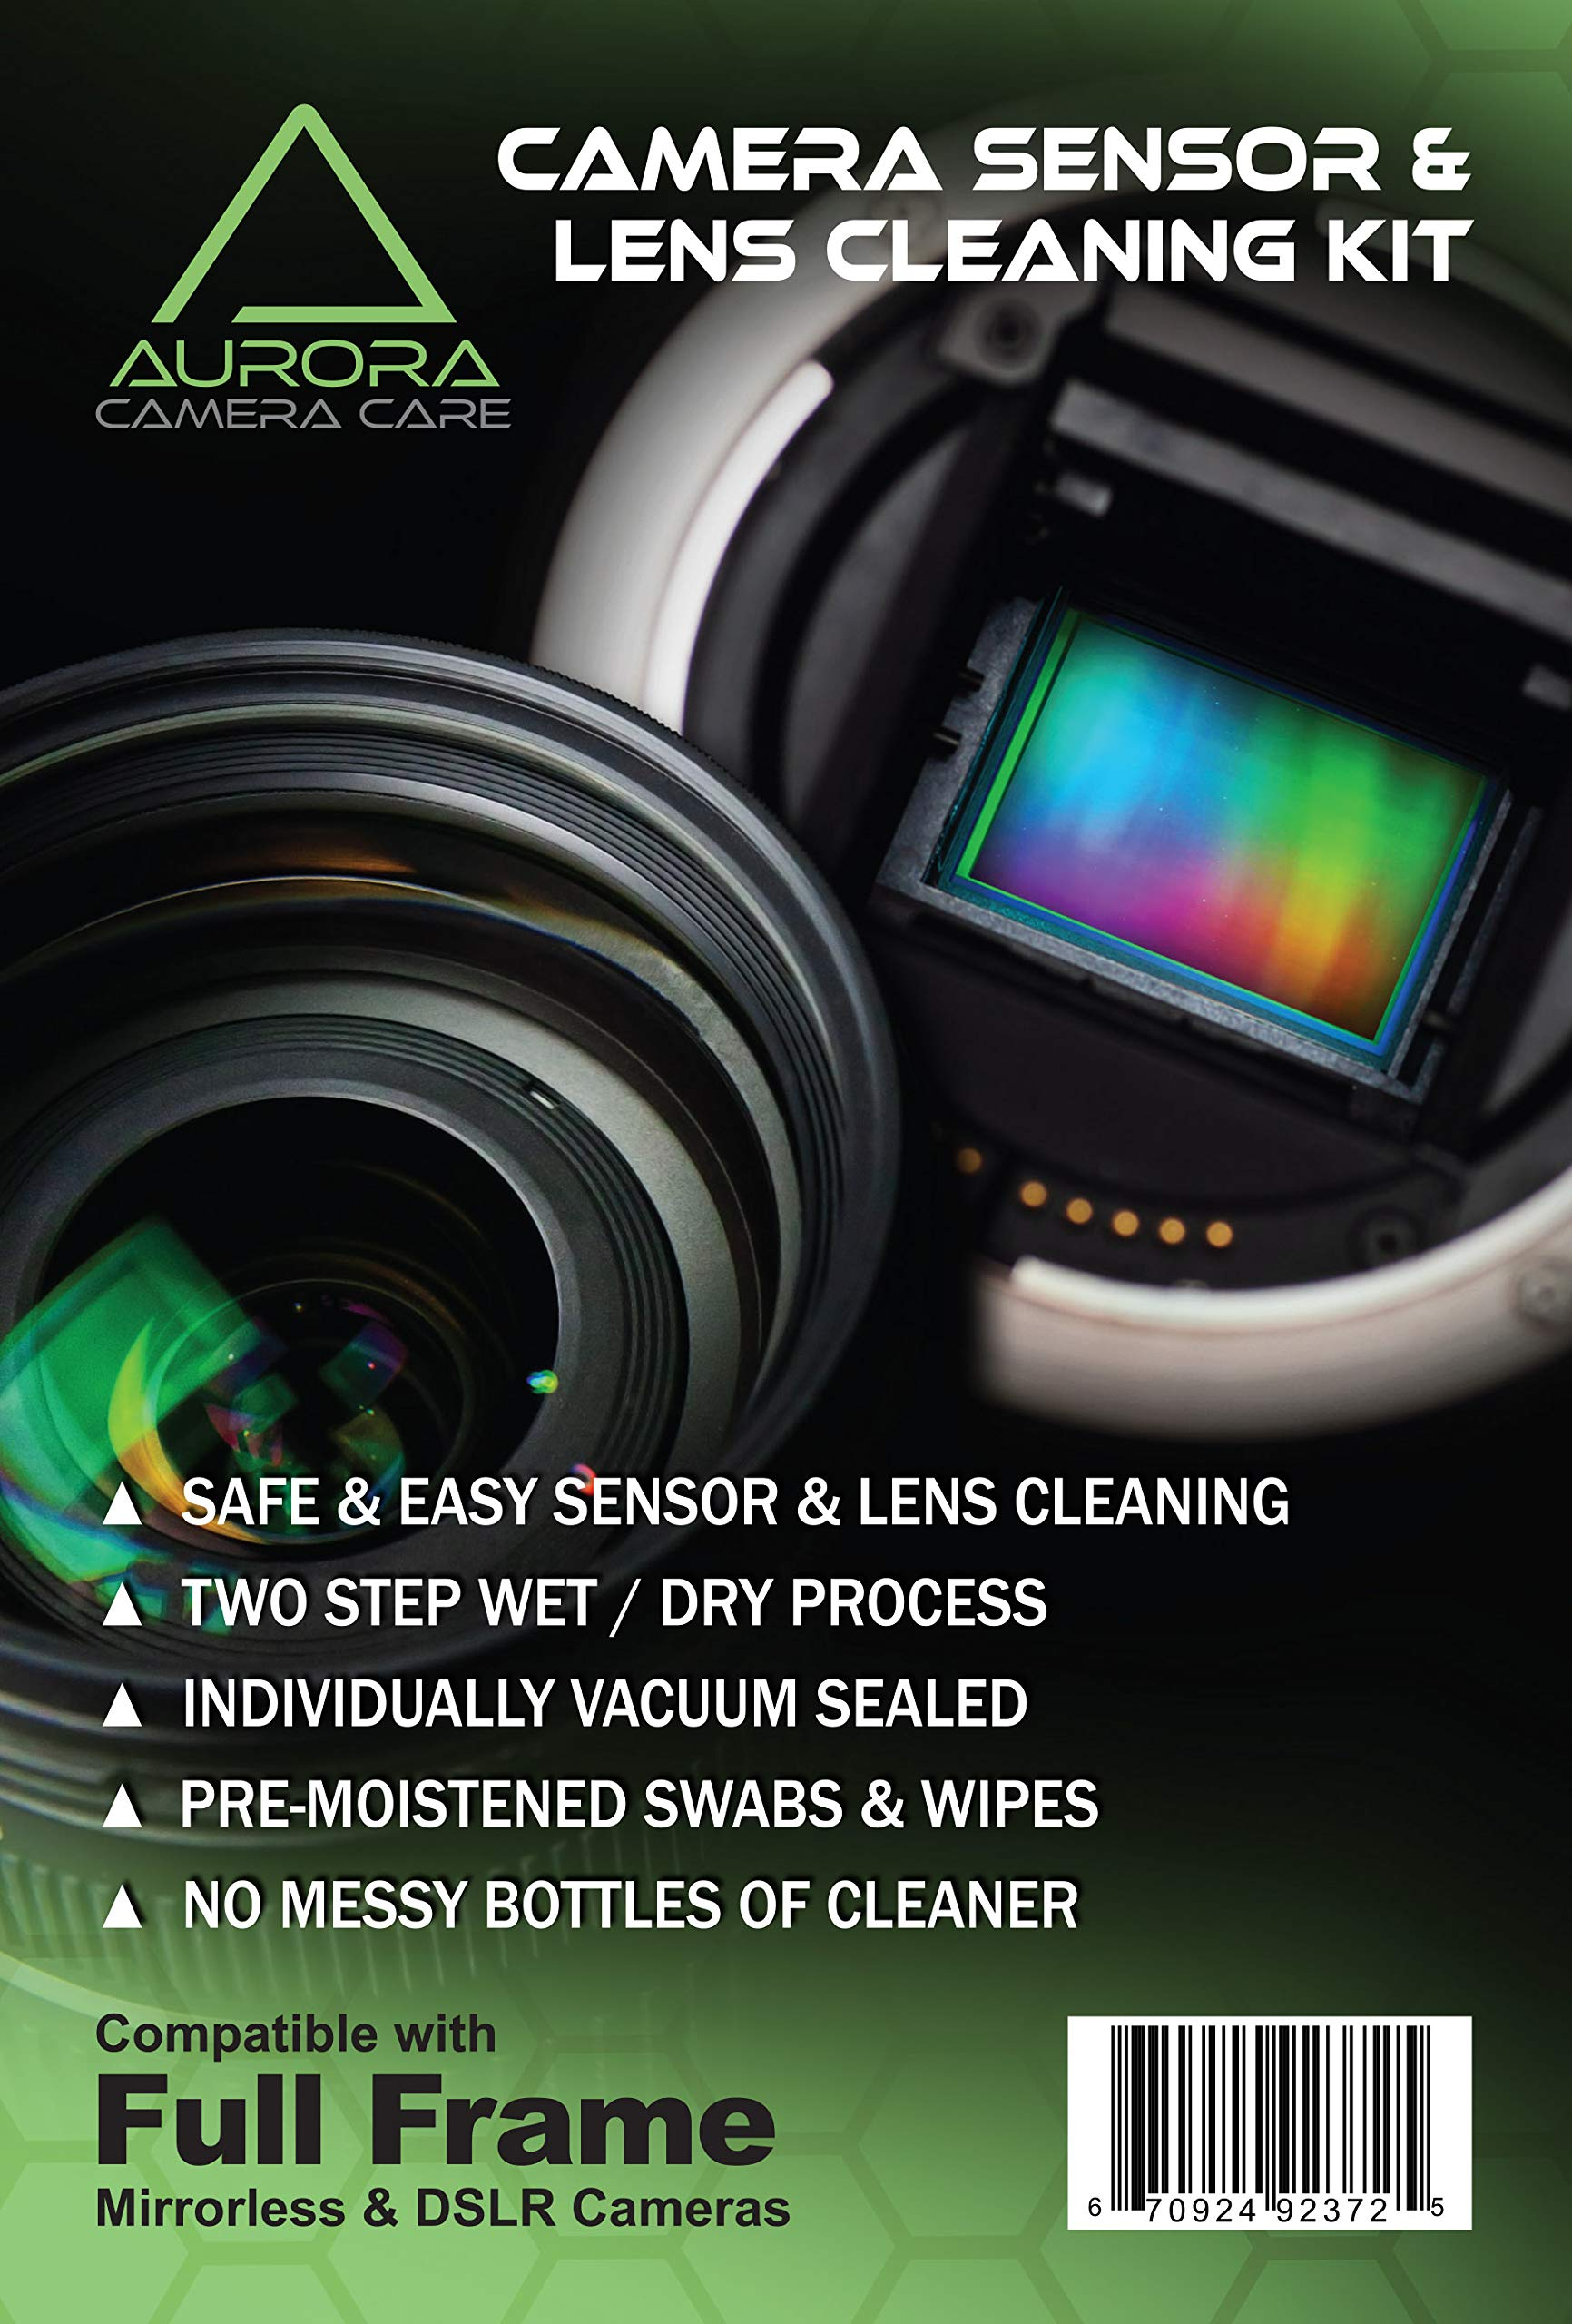 Aurora Camera Care Camera Sensor & Lens Cleaning Kits (Full Frame)